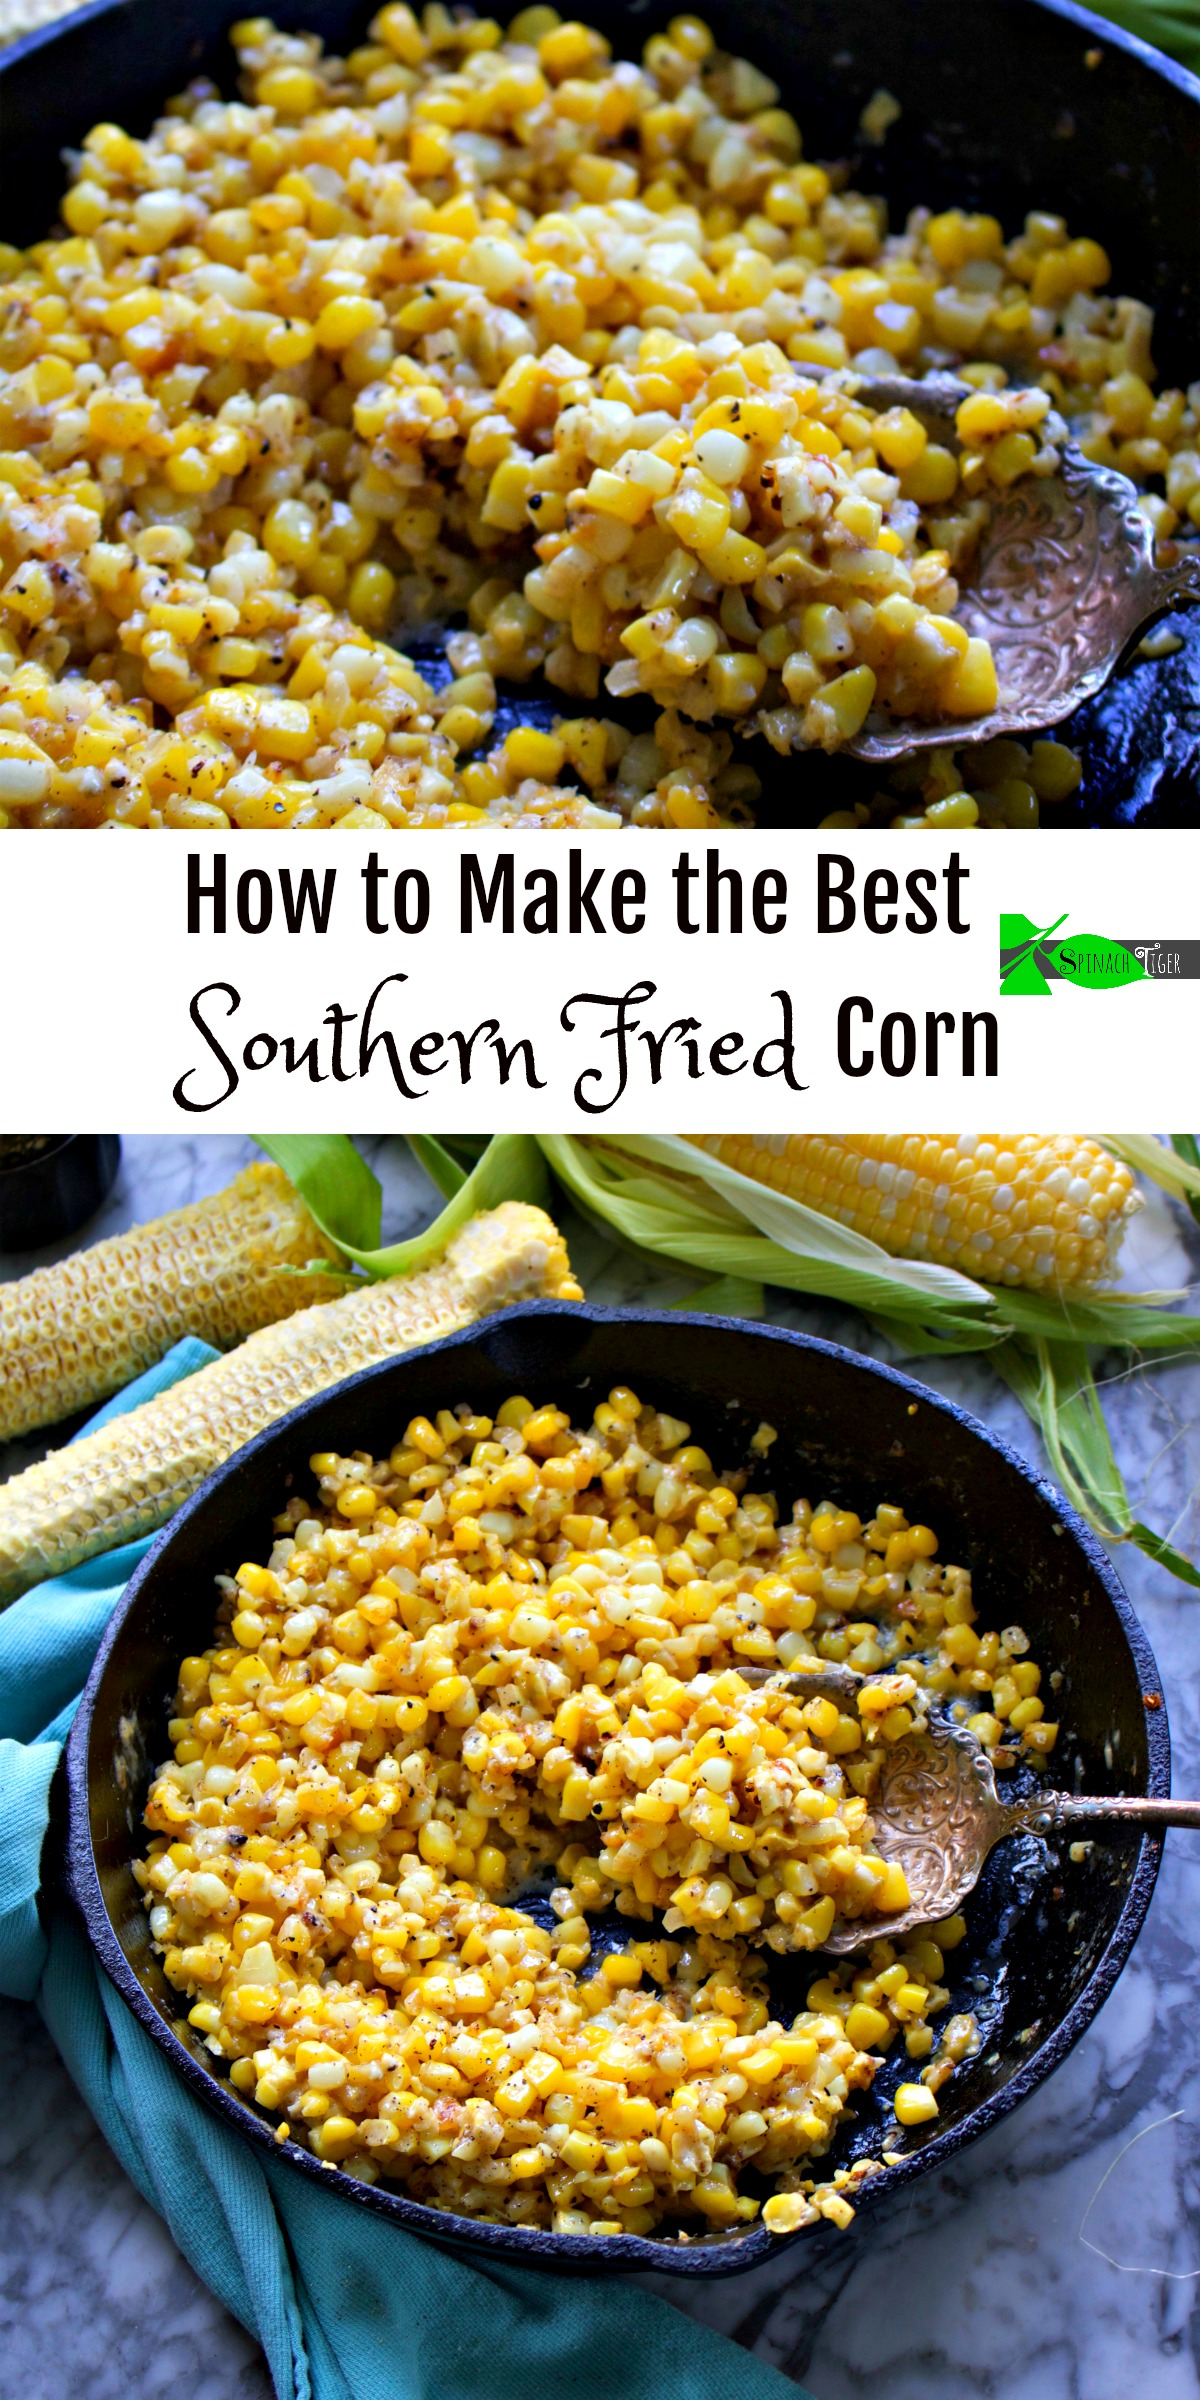 How to Make the Best Southern Fried Corn Recipe from Spinach Tiger